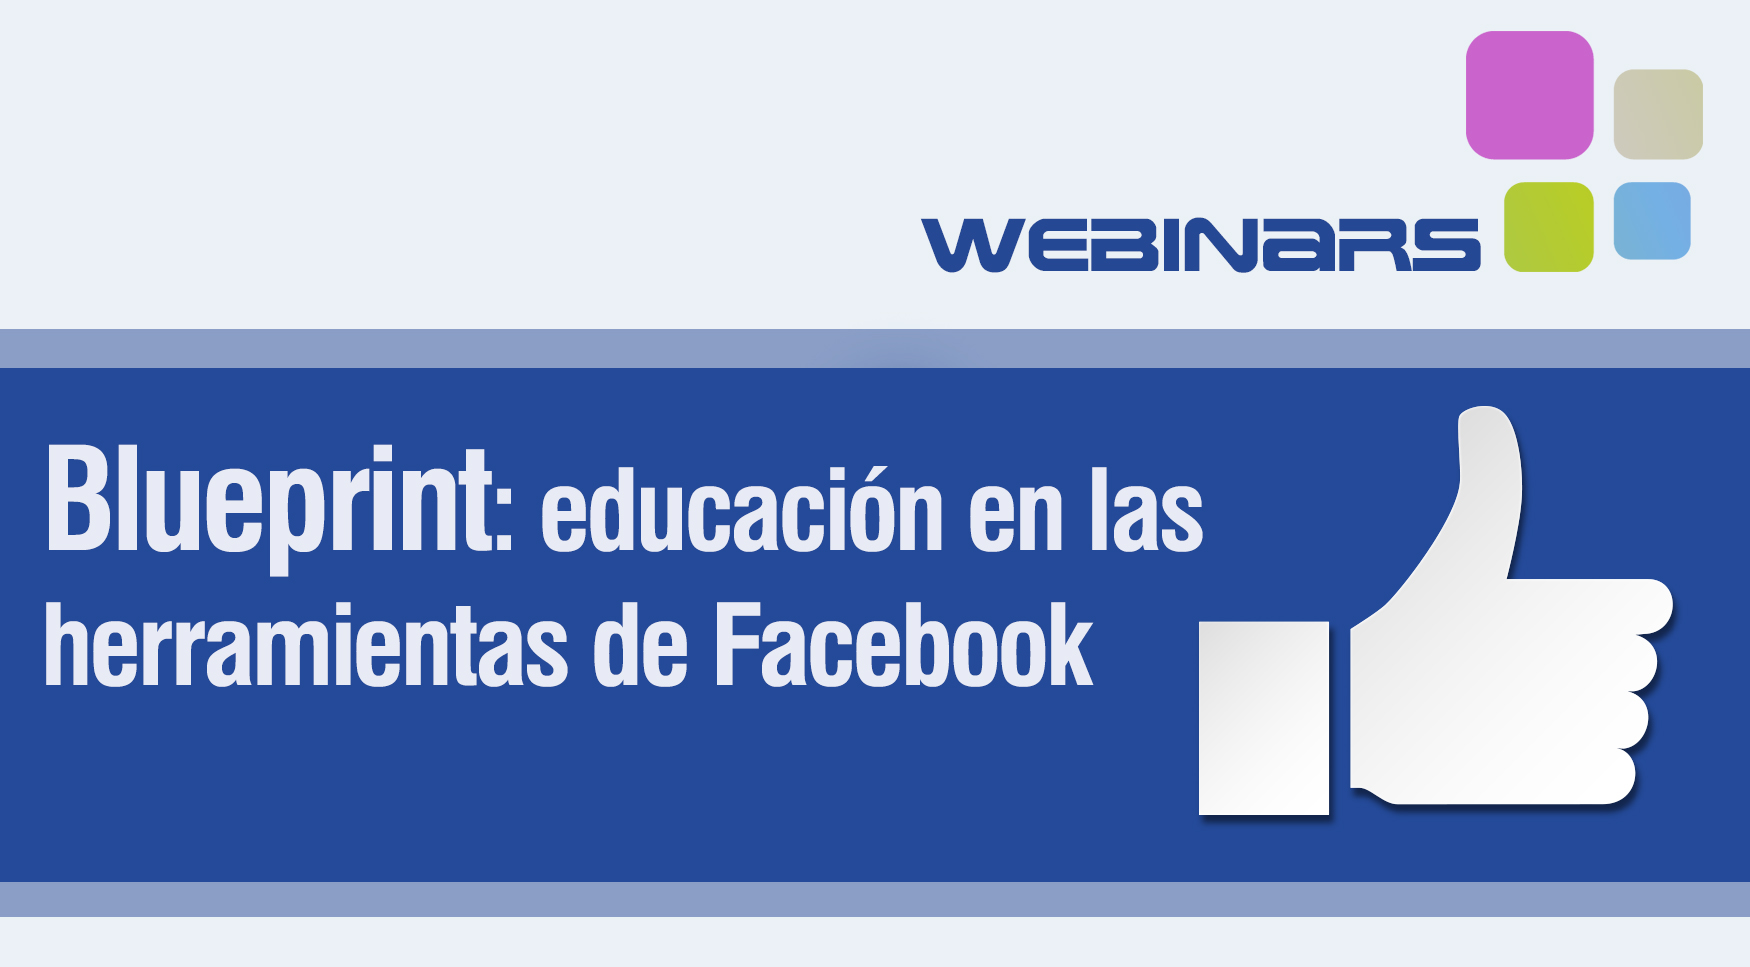 webinars_Blueprint